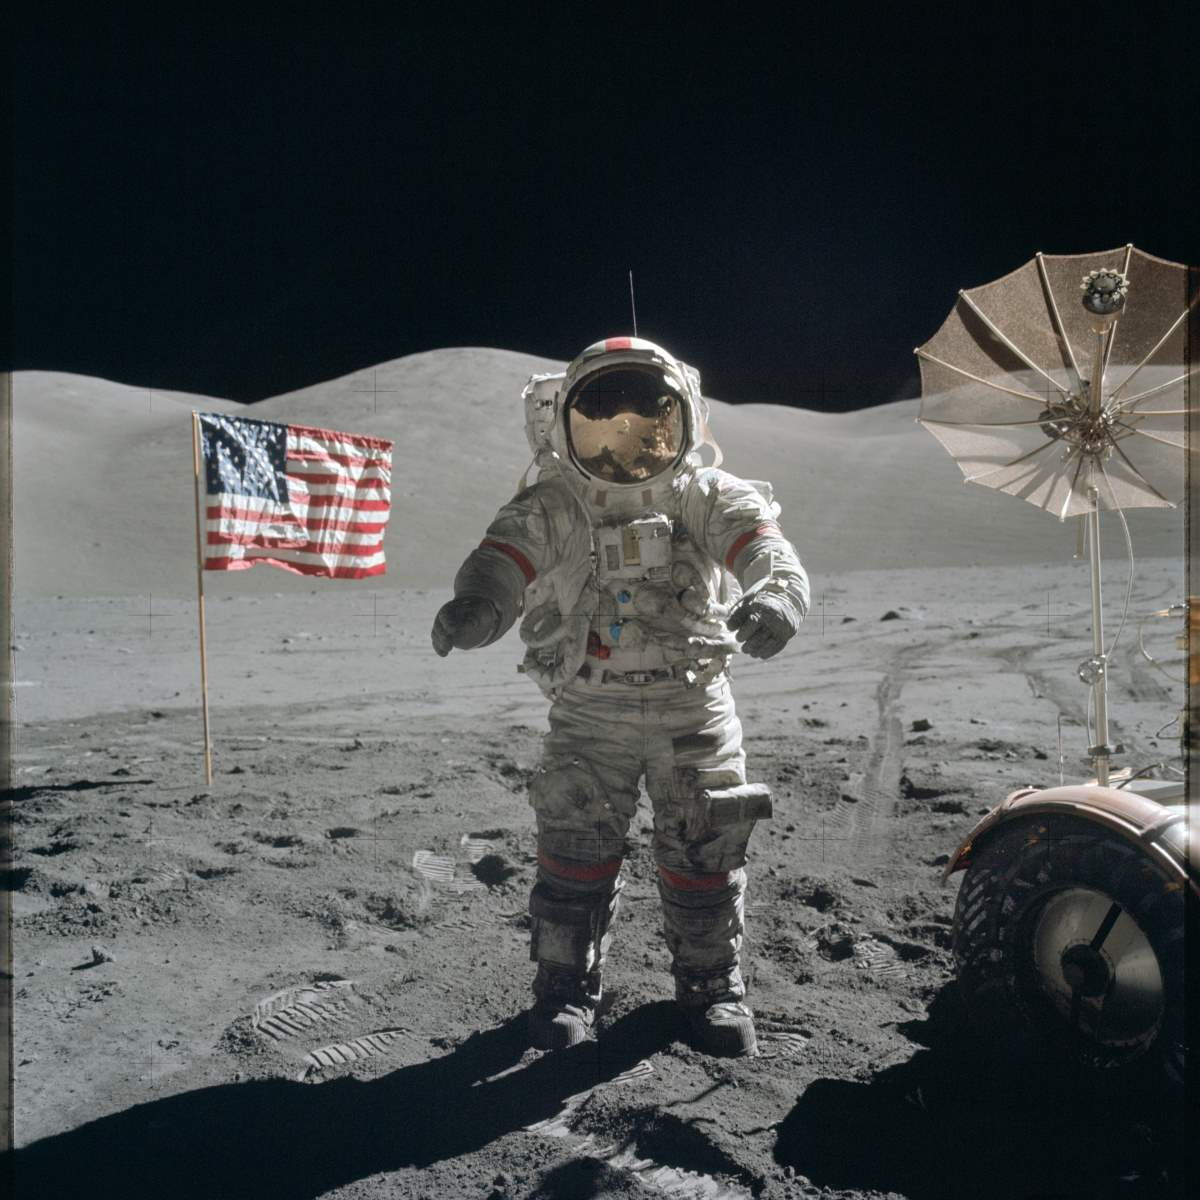 Space race - Moonwalk - Apollo 17 Mission image